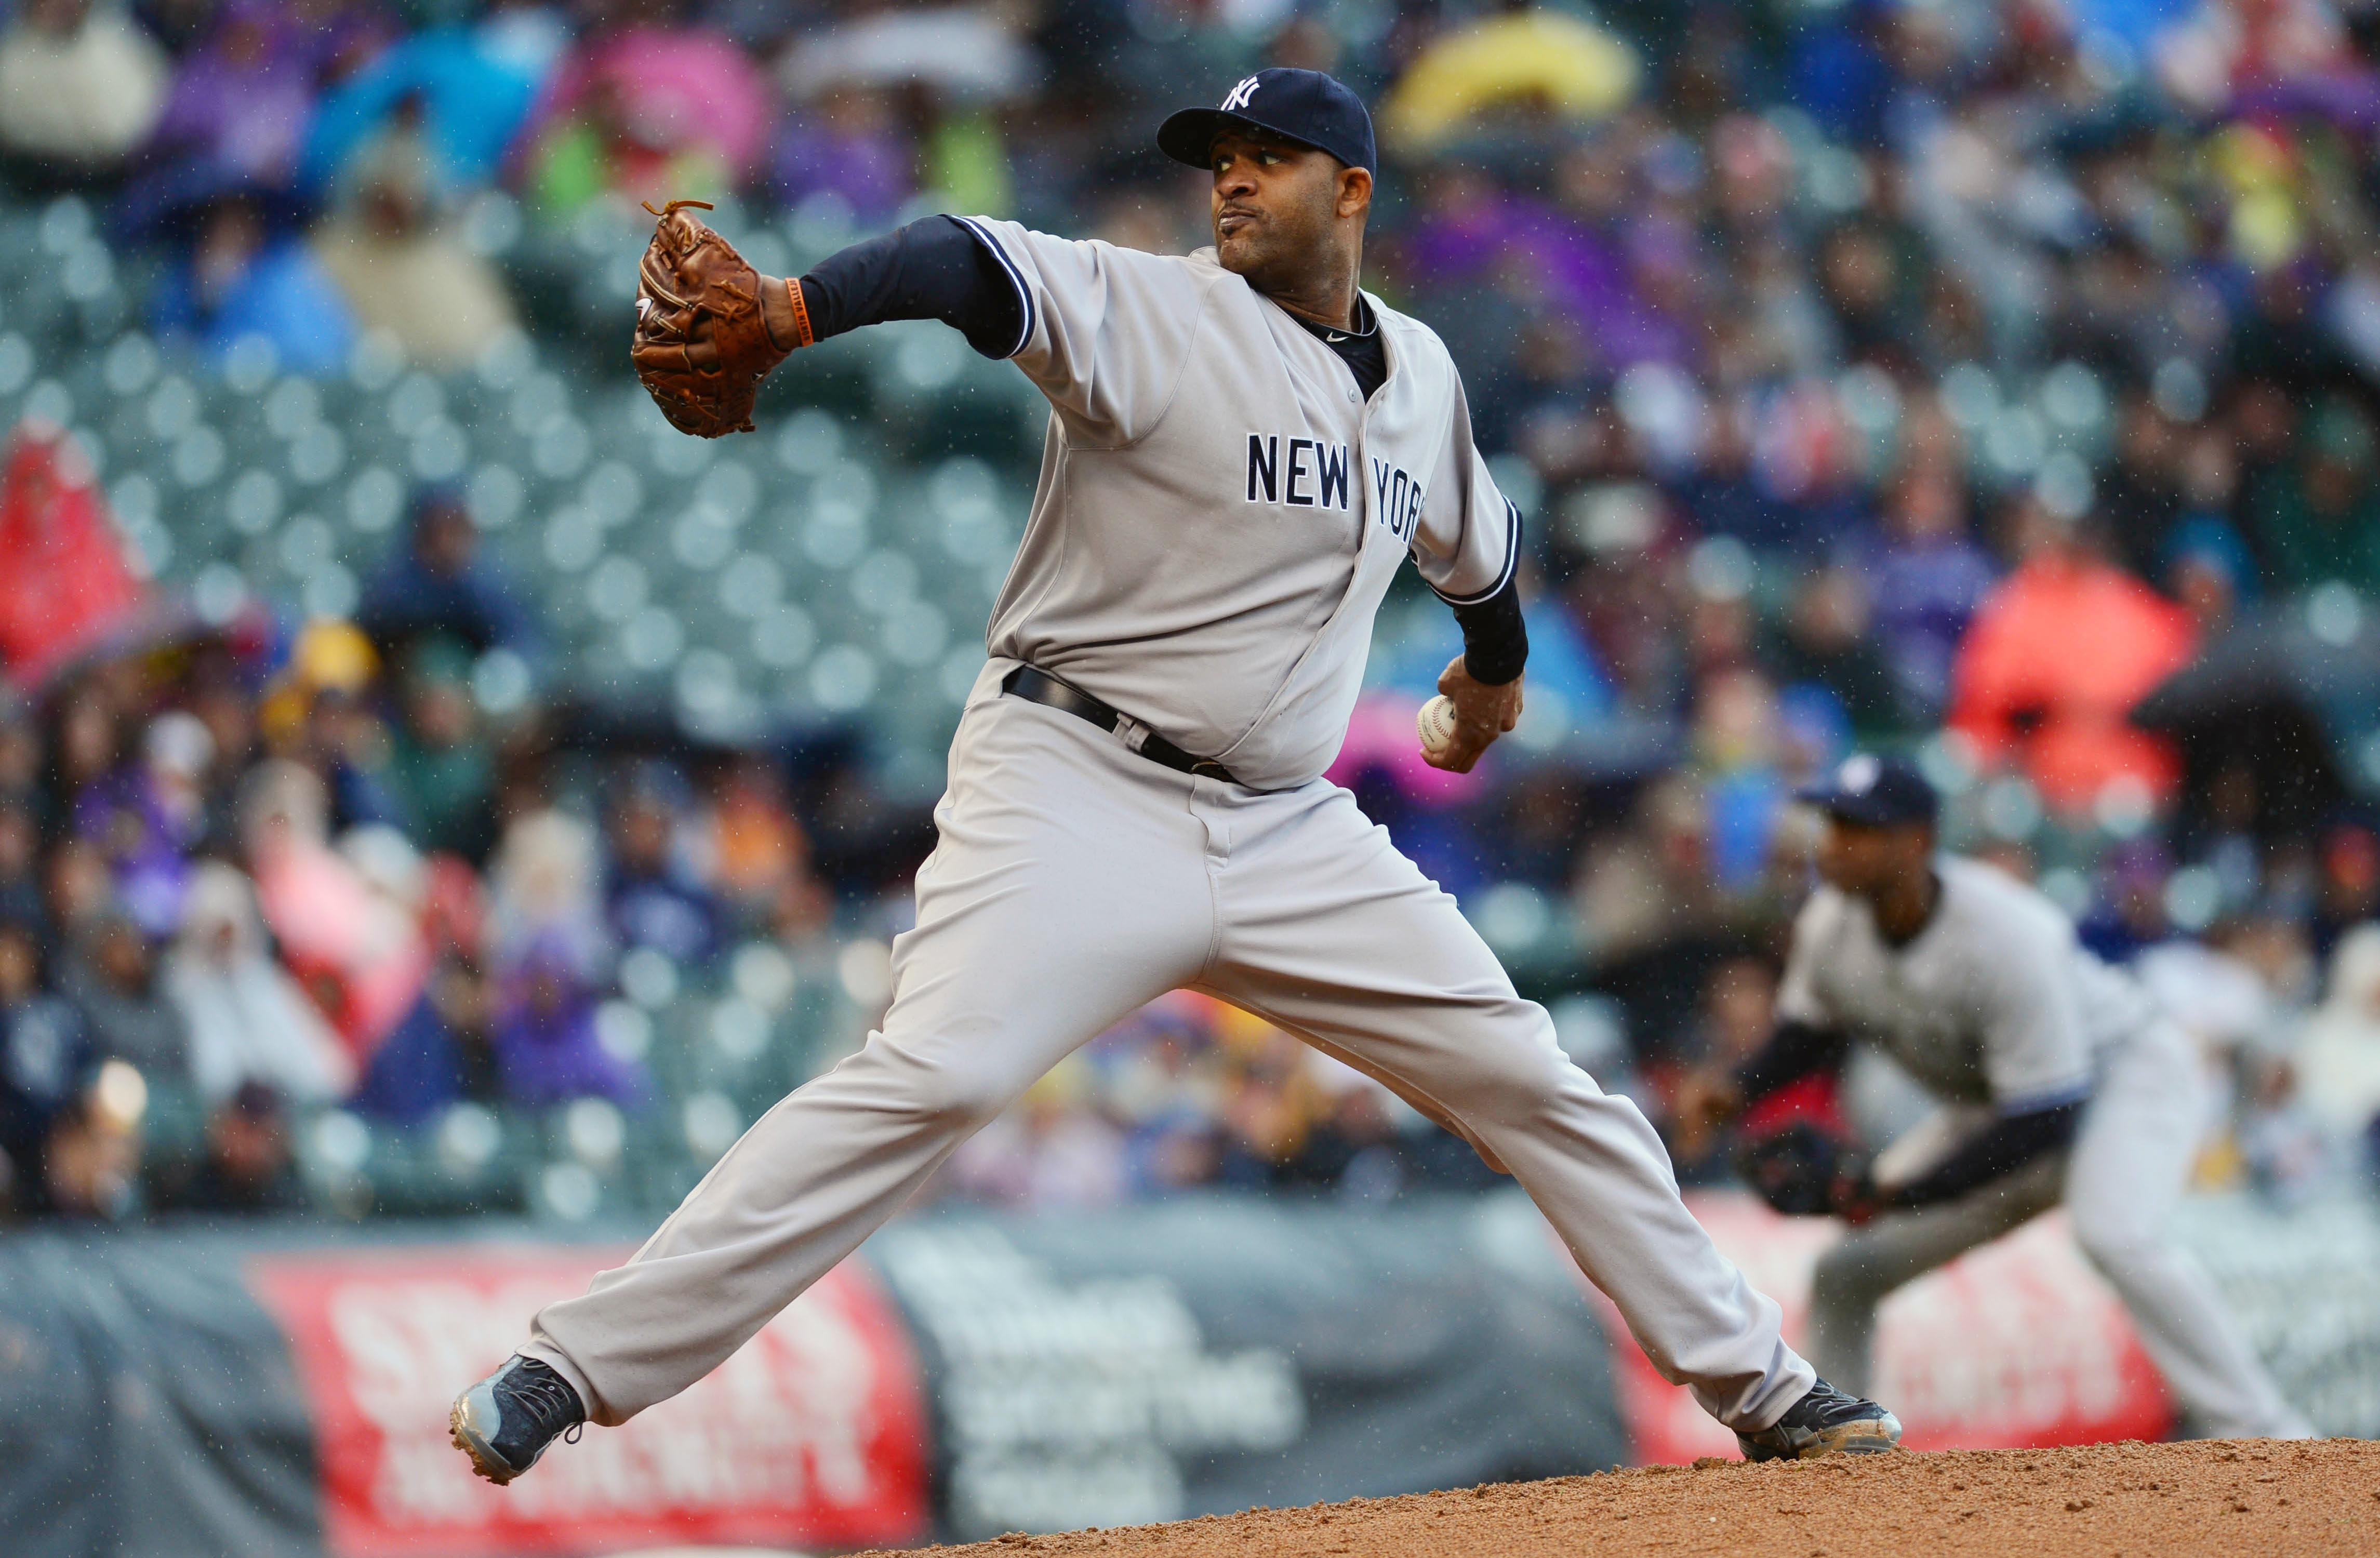 CC Sabathia's velocity is down but he says he's relying on location to stay effective. (USA Today Sports)